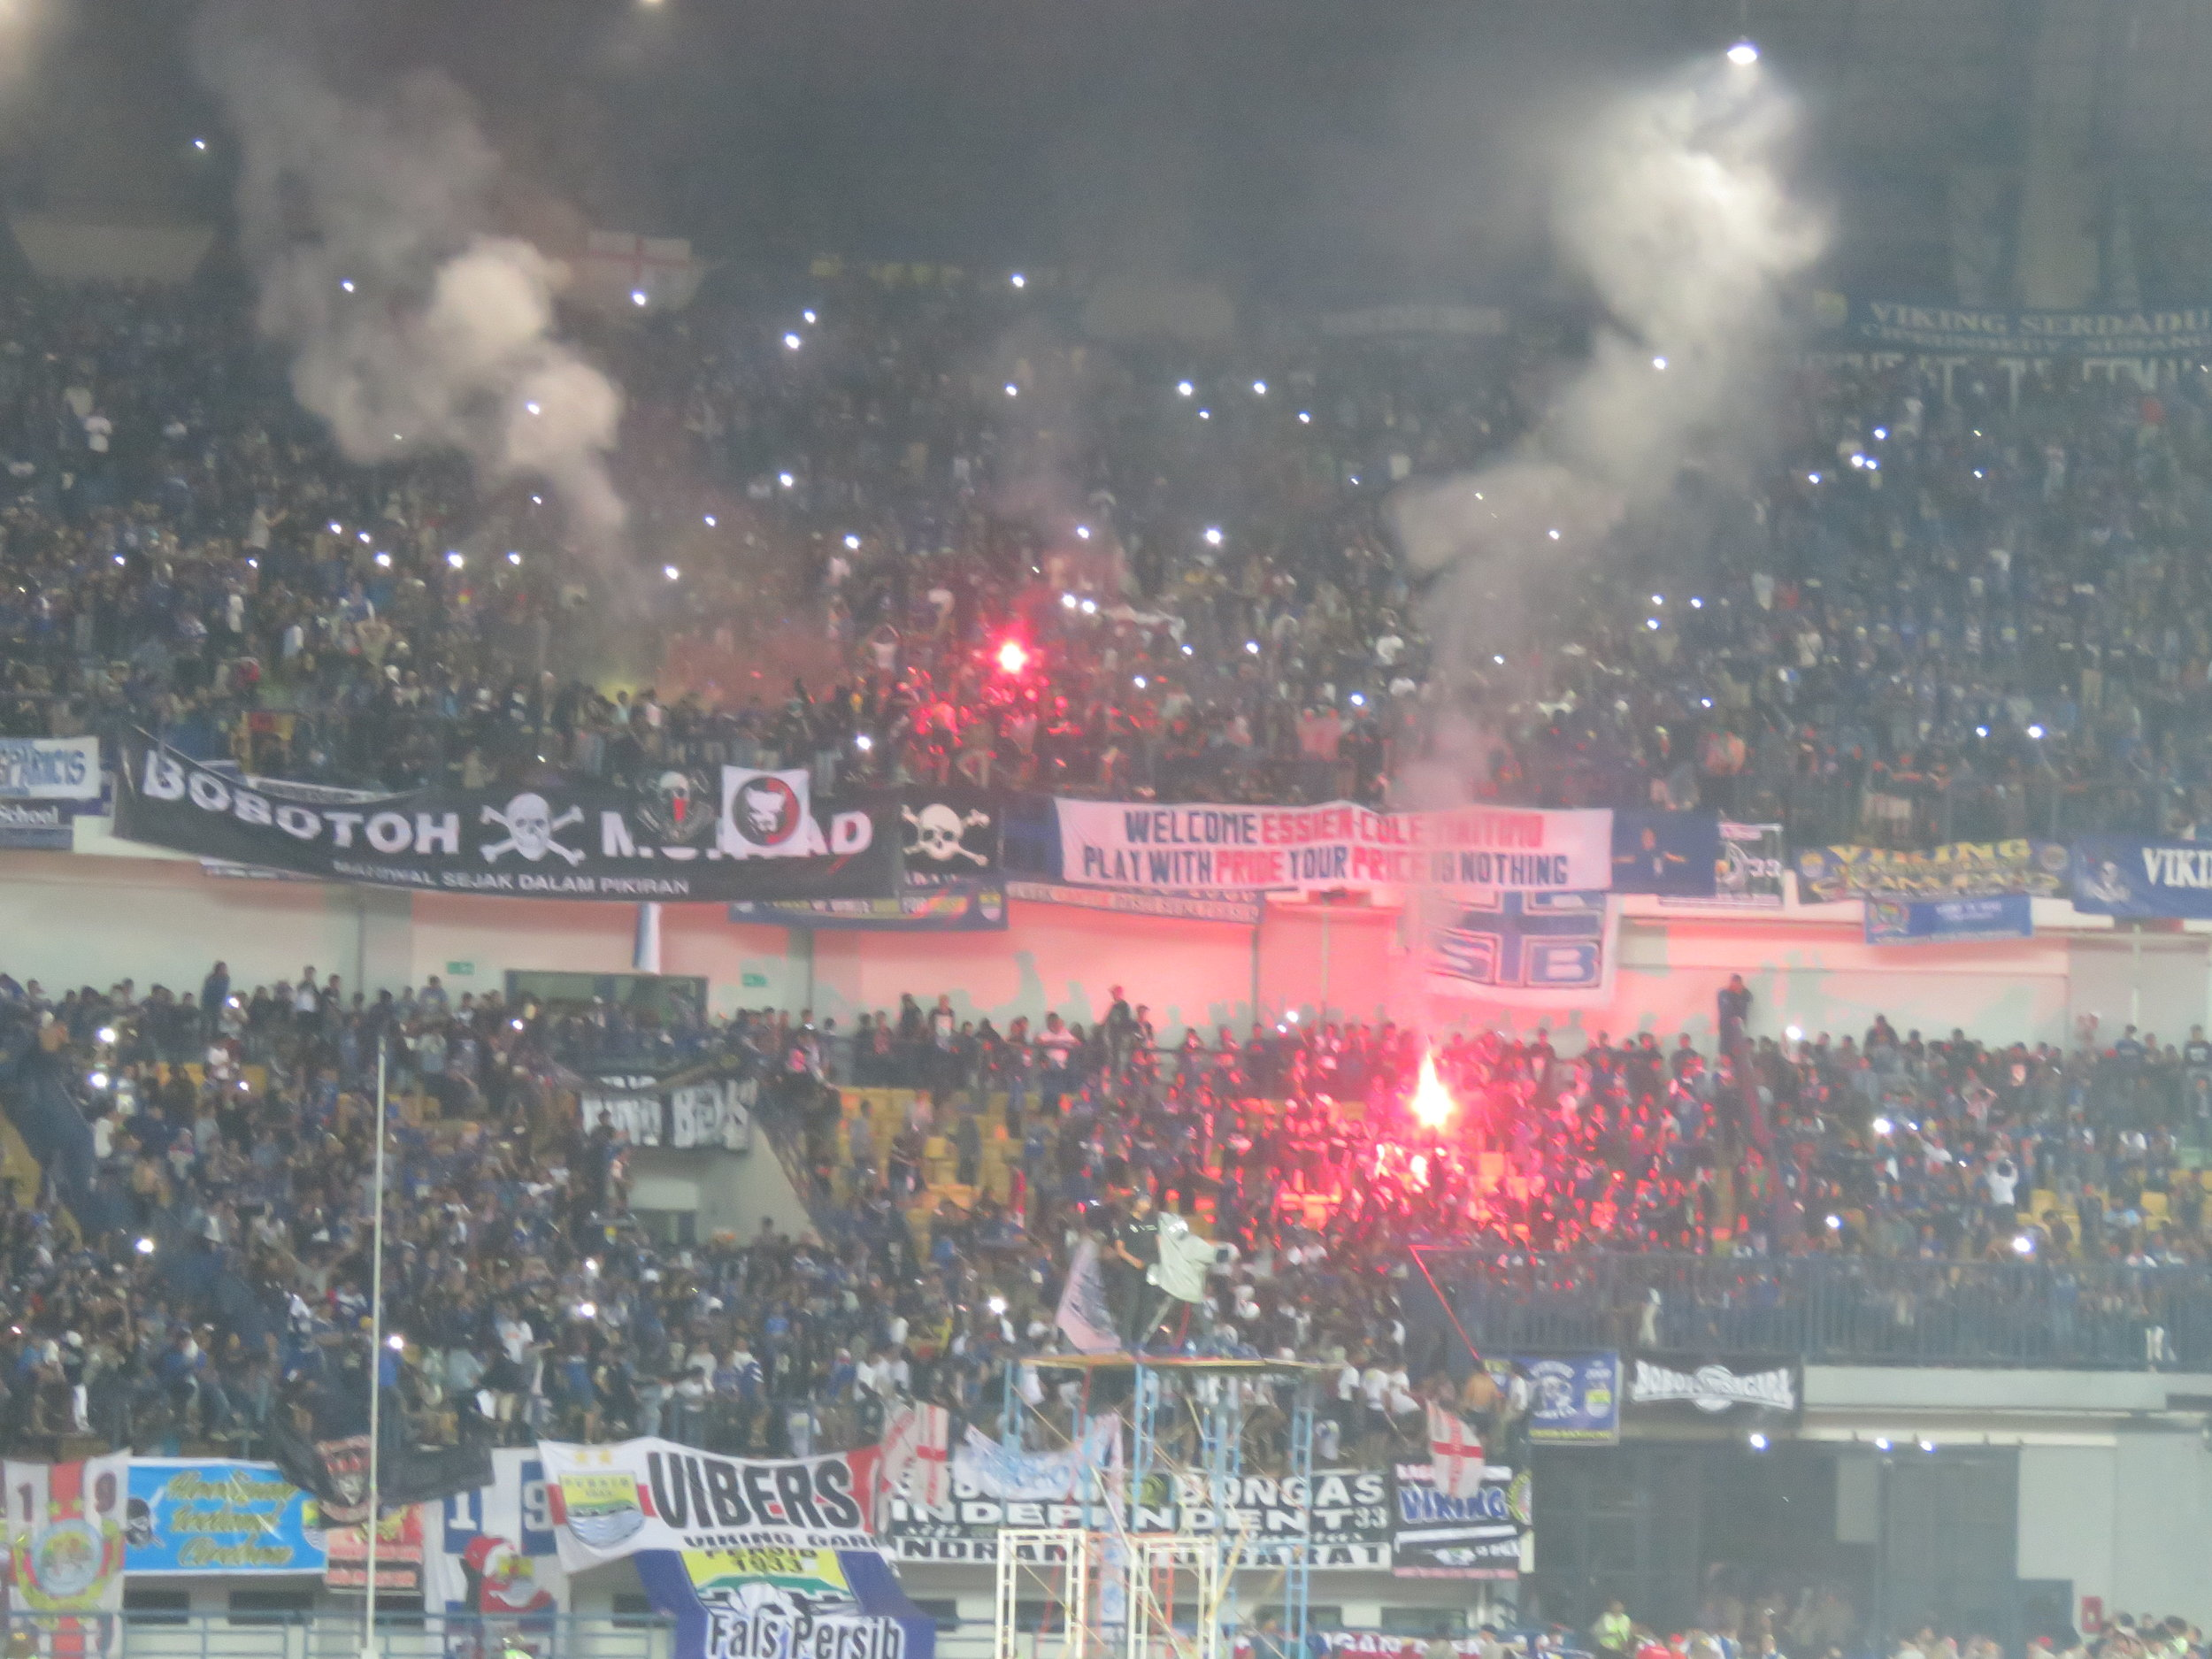 Post-match flares. Note the banner about Essien and Cole